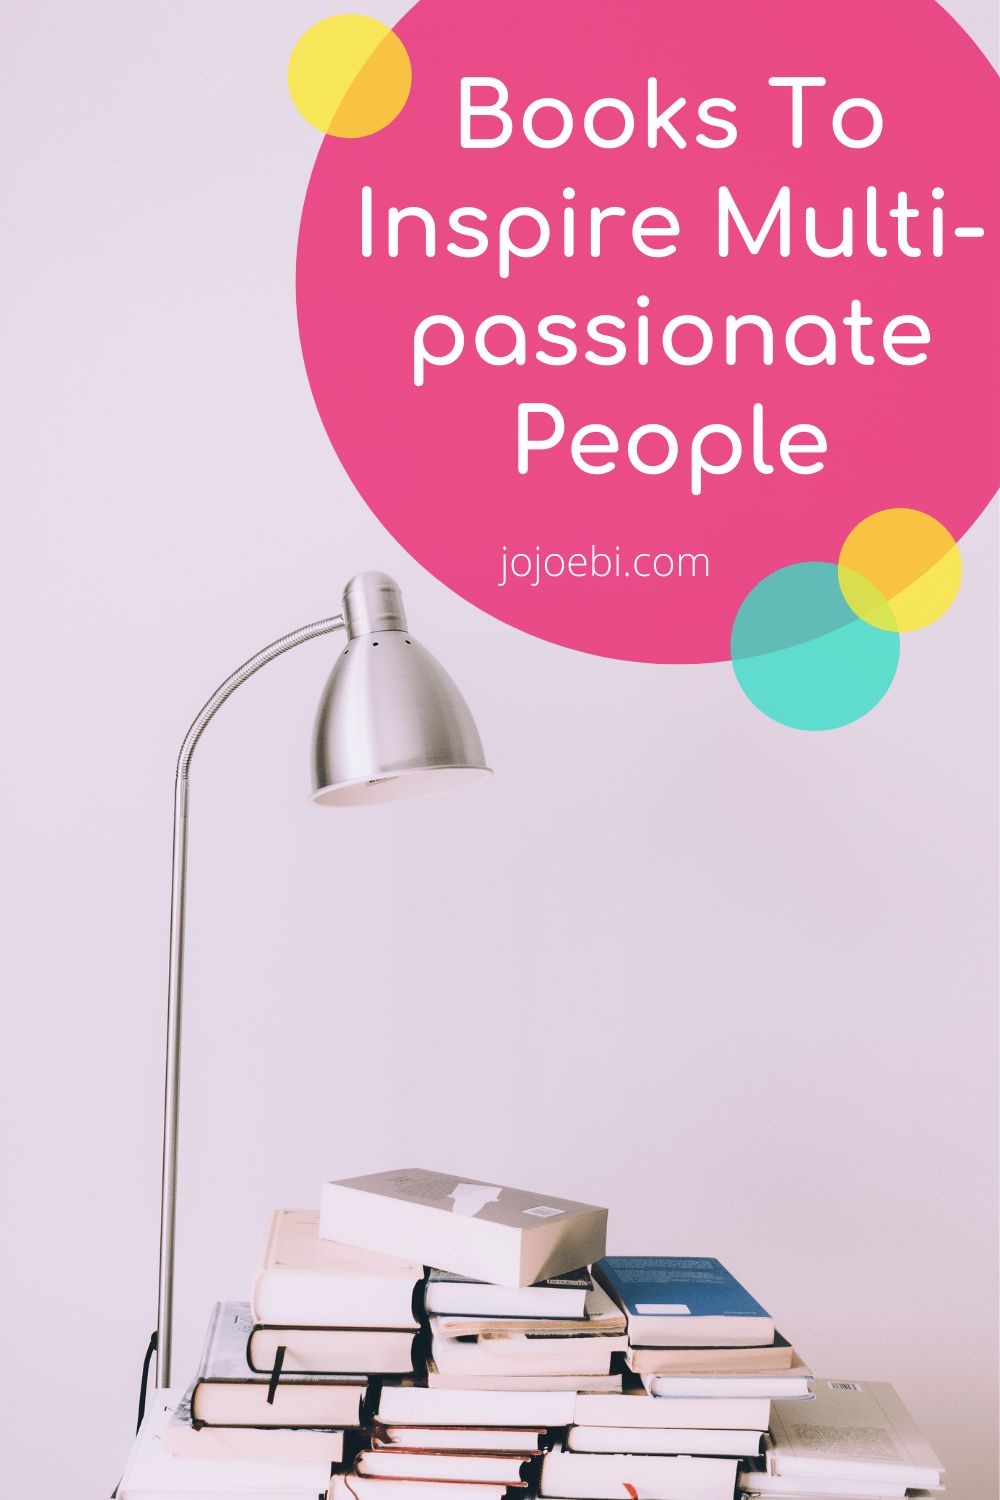 Books To Inspire Multi-passionate People pin 2